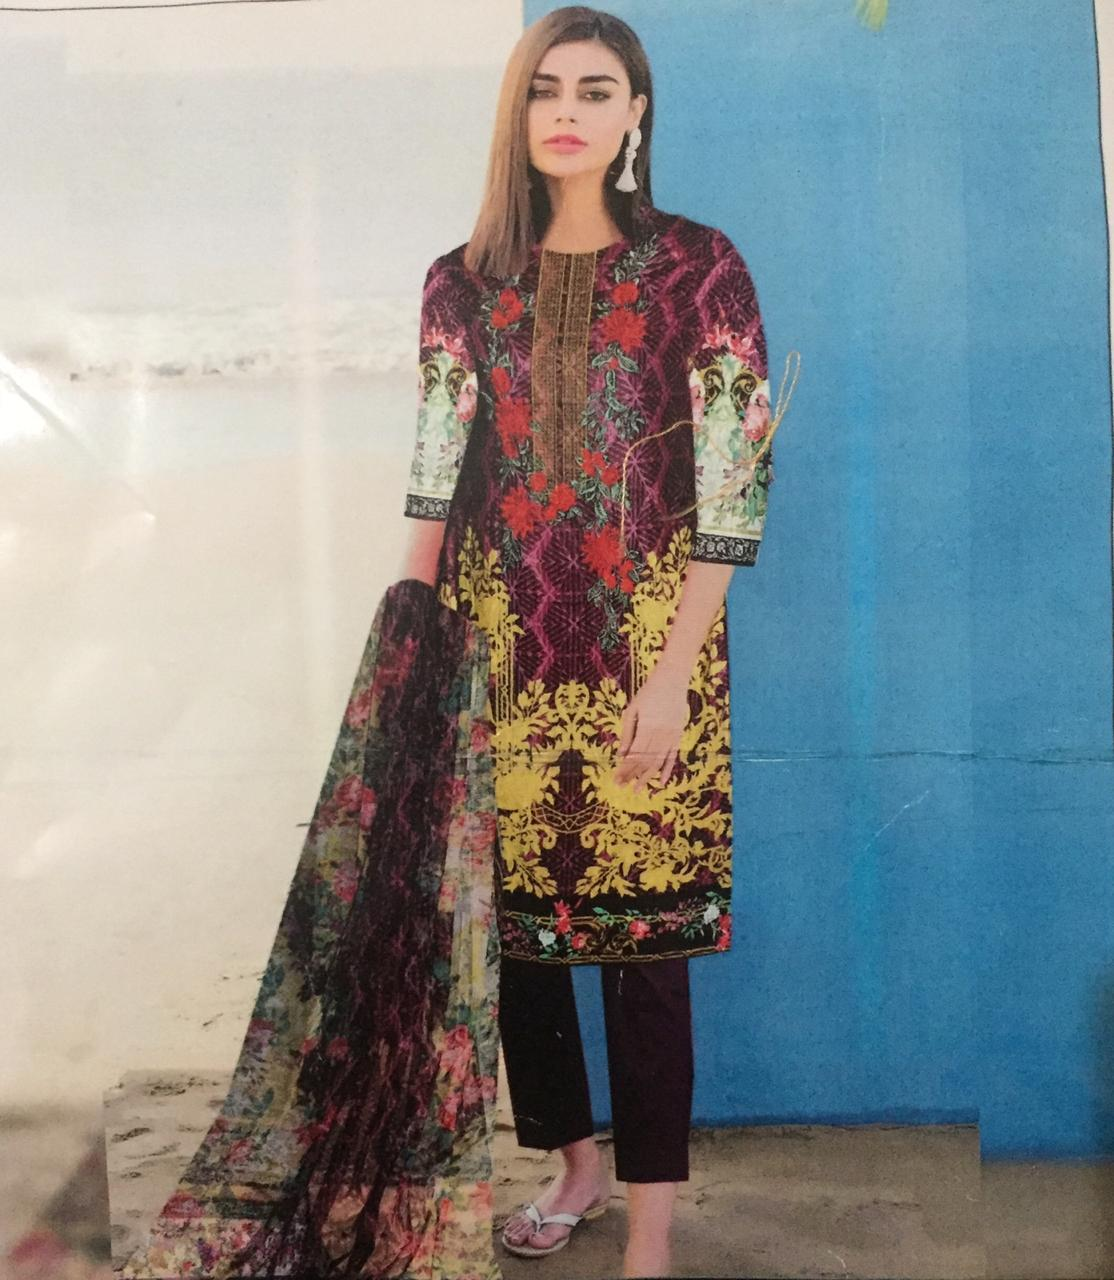 34c4cafe75 Embroidered Multicolour Sana Safina Lawn suit for womens - 3 piece